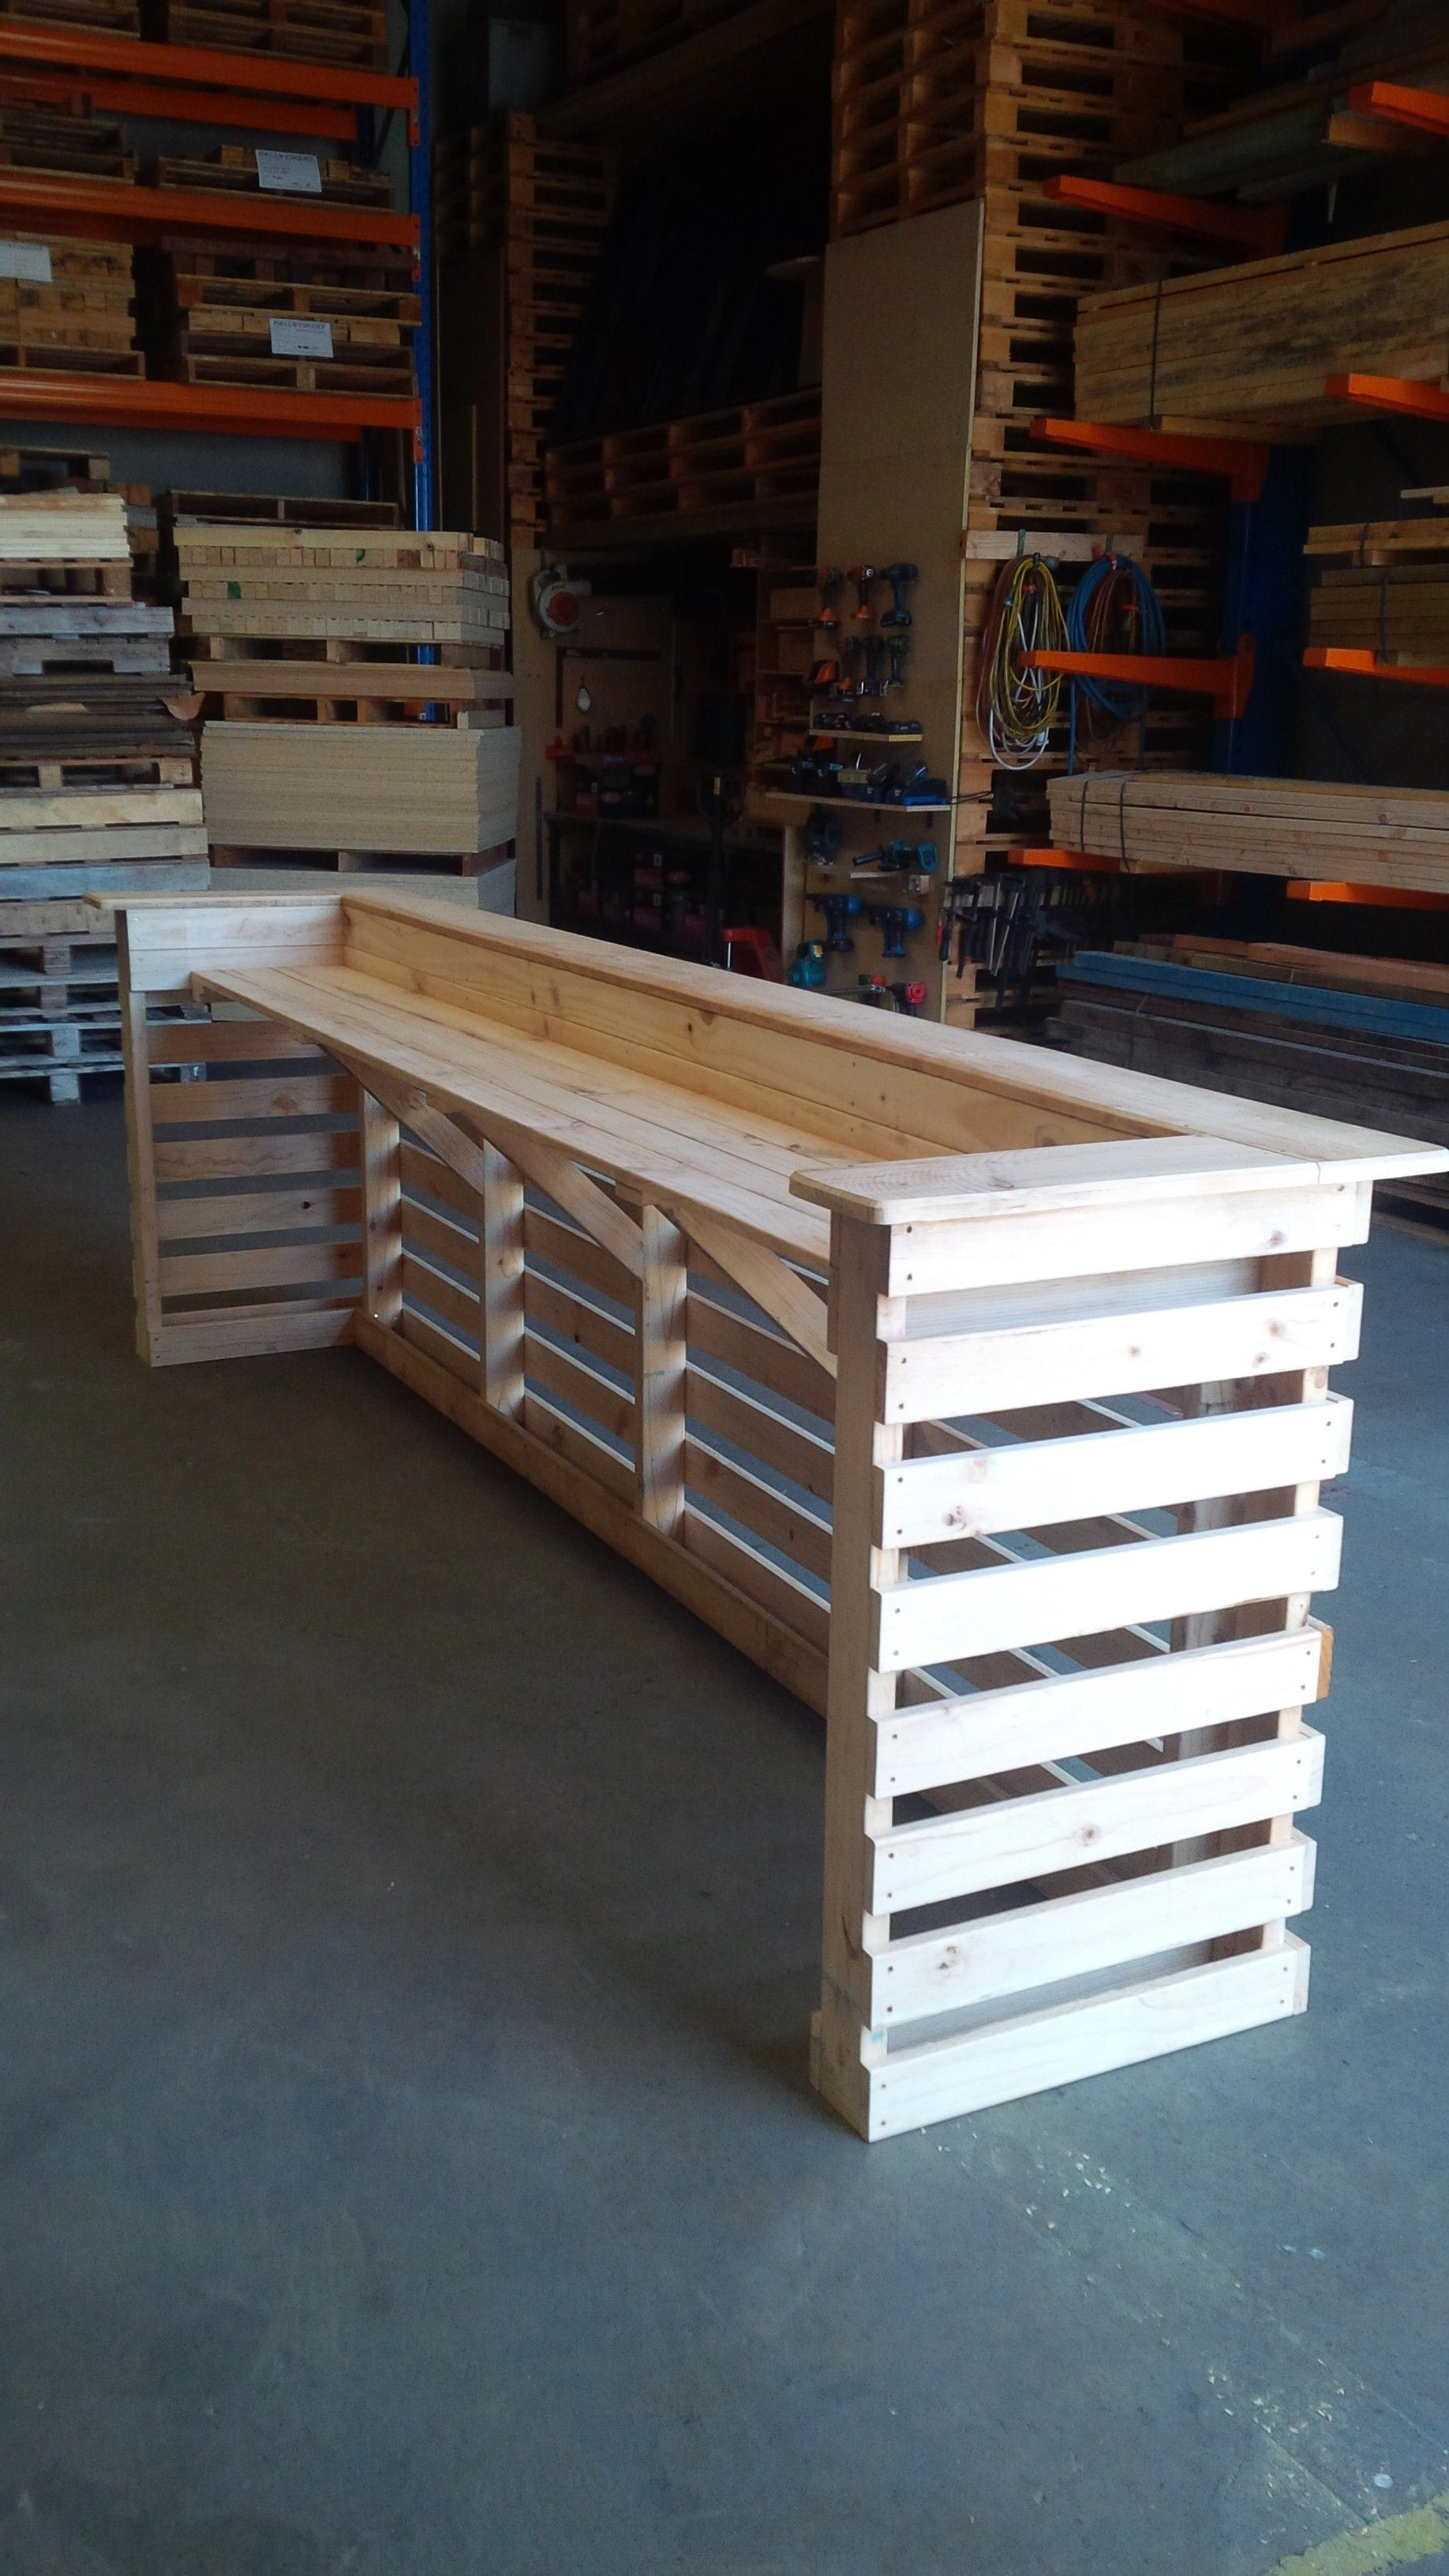 Best ideas about DIY Pallet Bar . Save or Pin 30 Best Picket Pallet Bar DIY Ideas for Your Home Now.